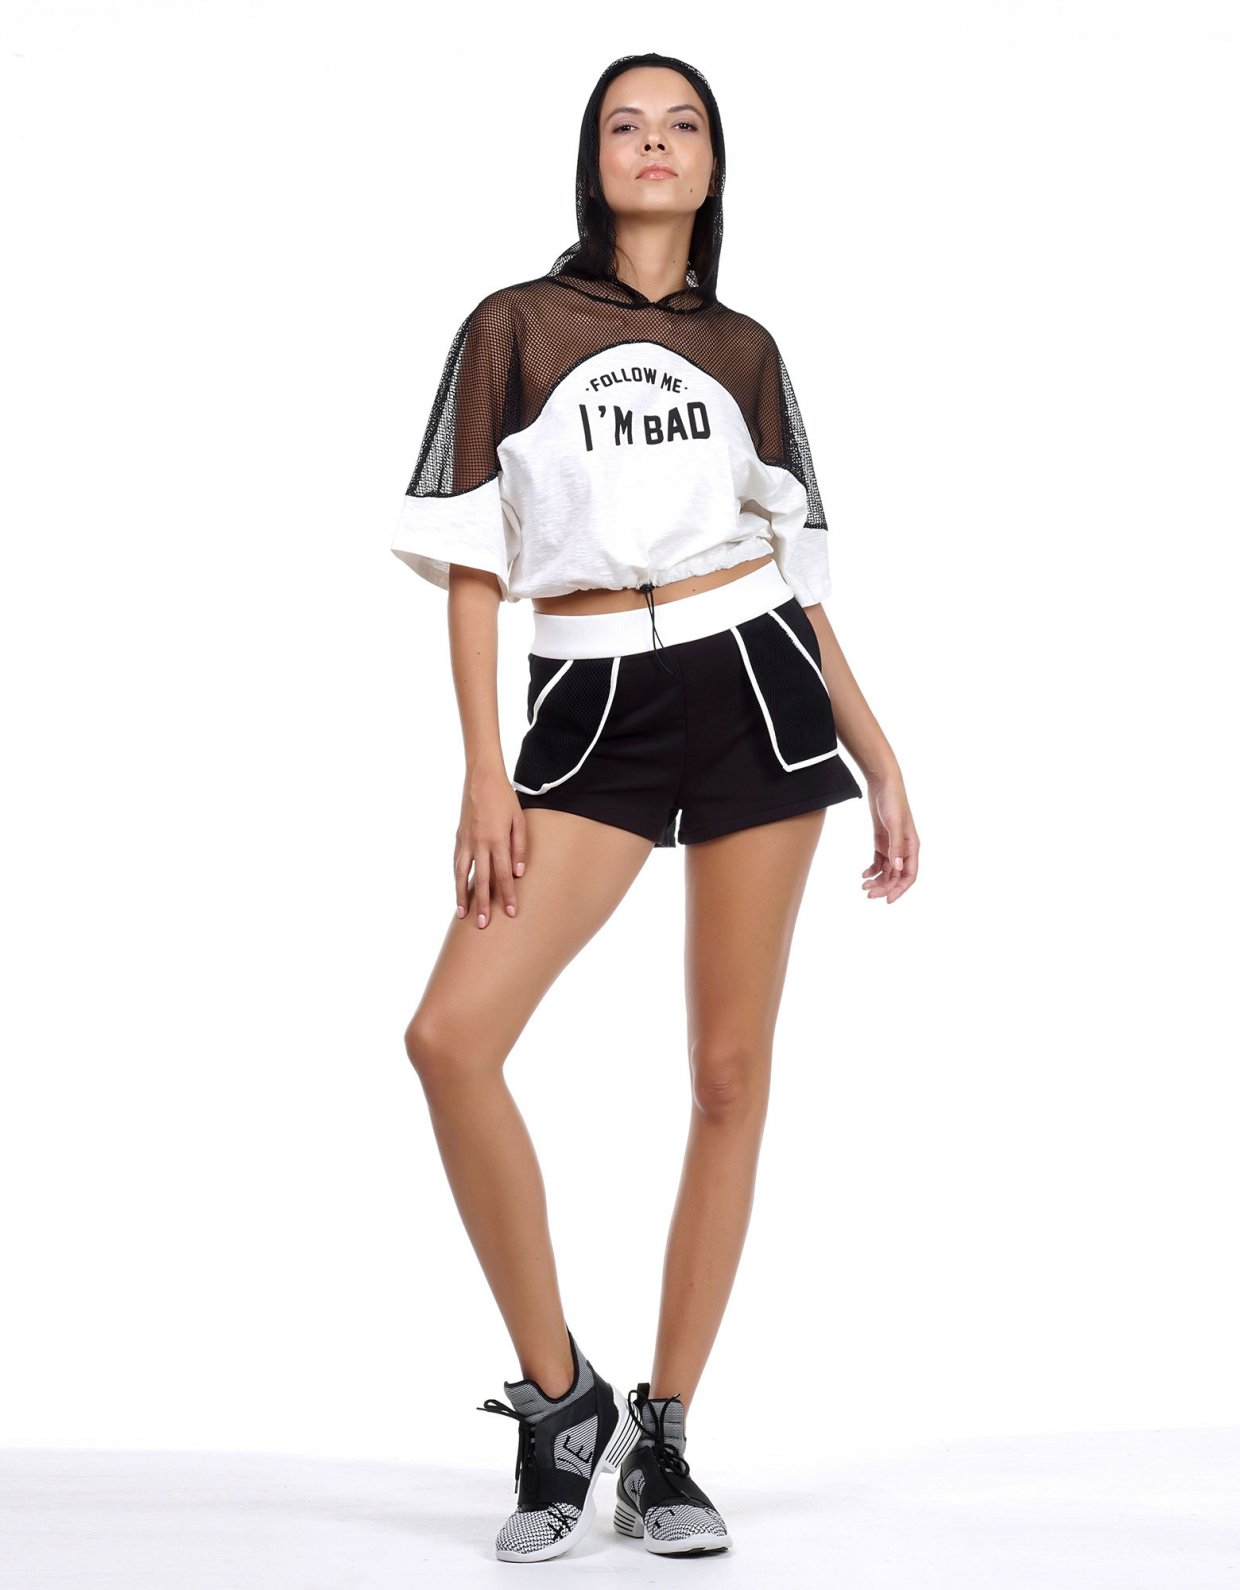 Kendall + Kylie Follow me shorts